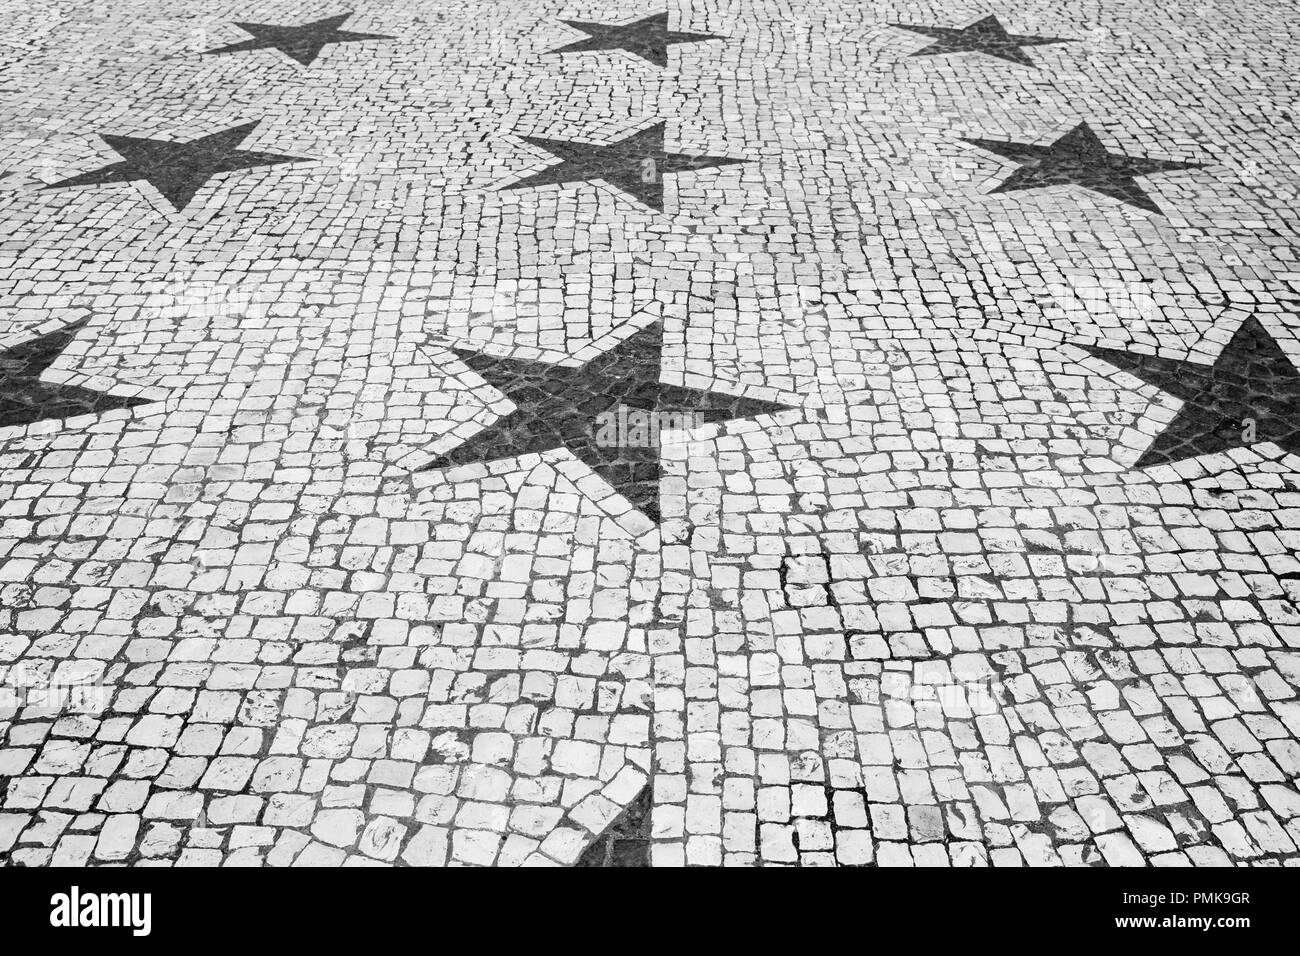 Mosaic street art with stars in black and white in the city of Ponta Delgada, Sao Miguel island, Azores - Stock Image